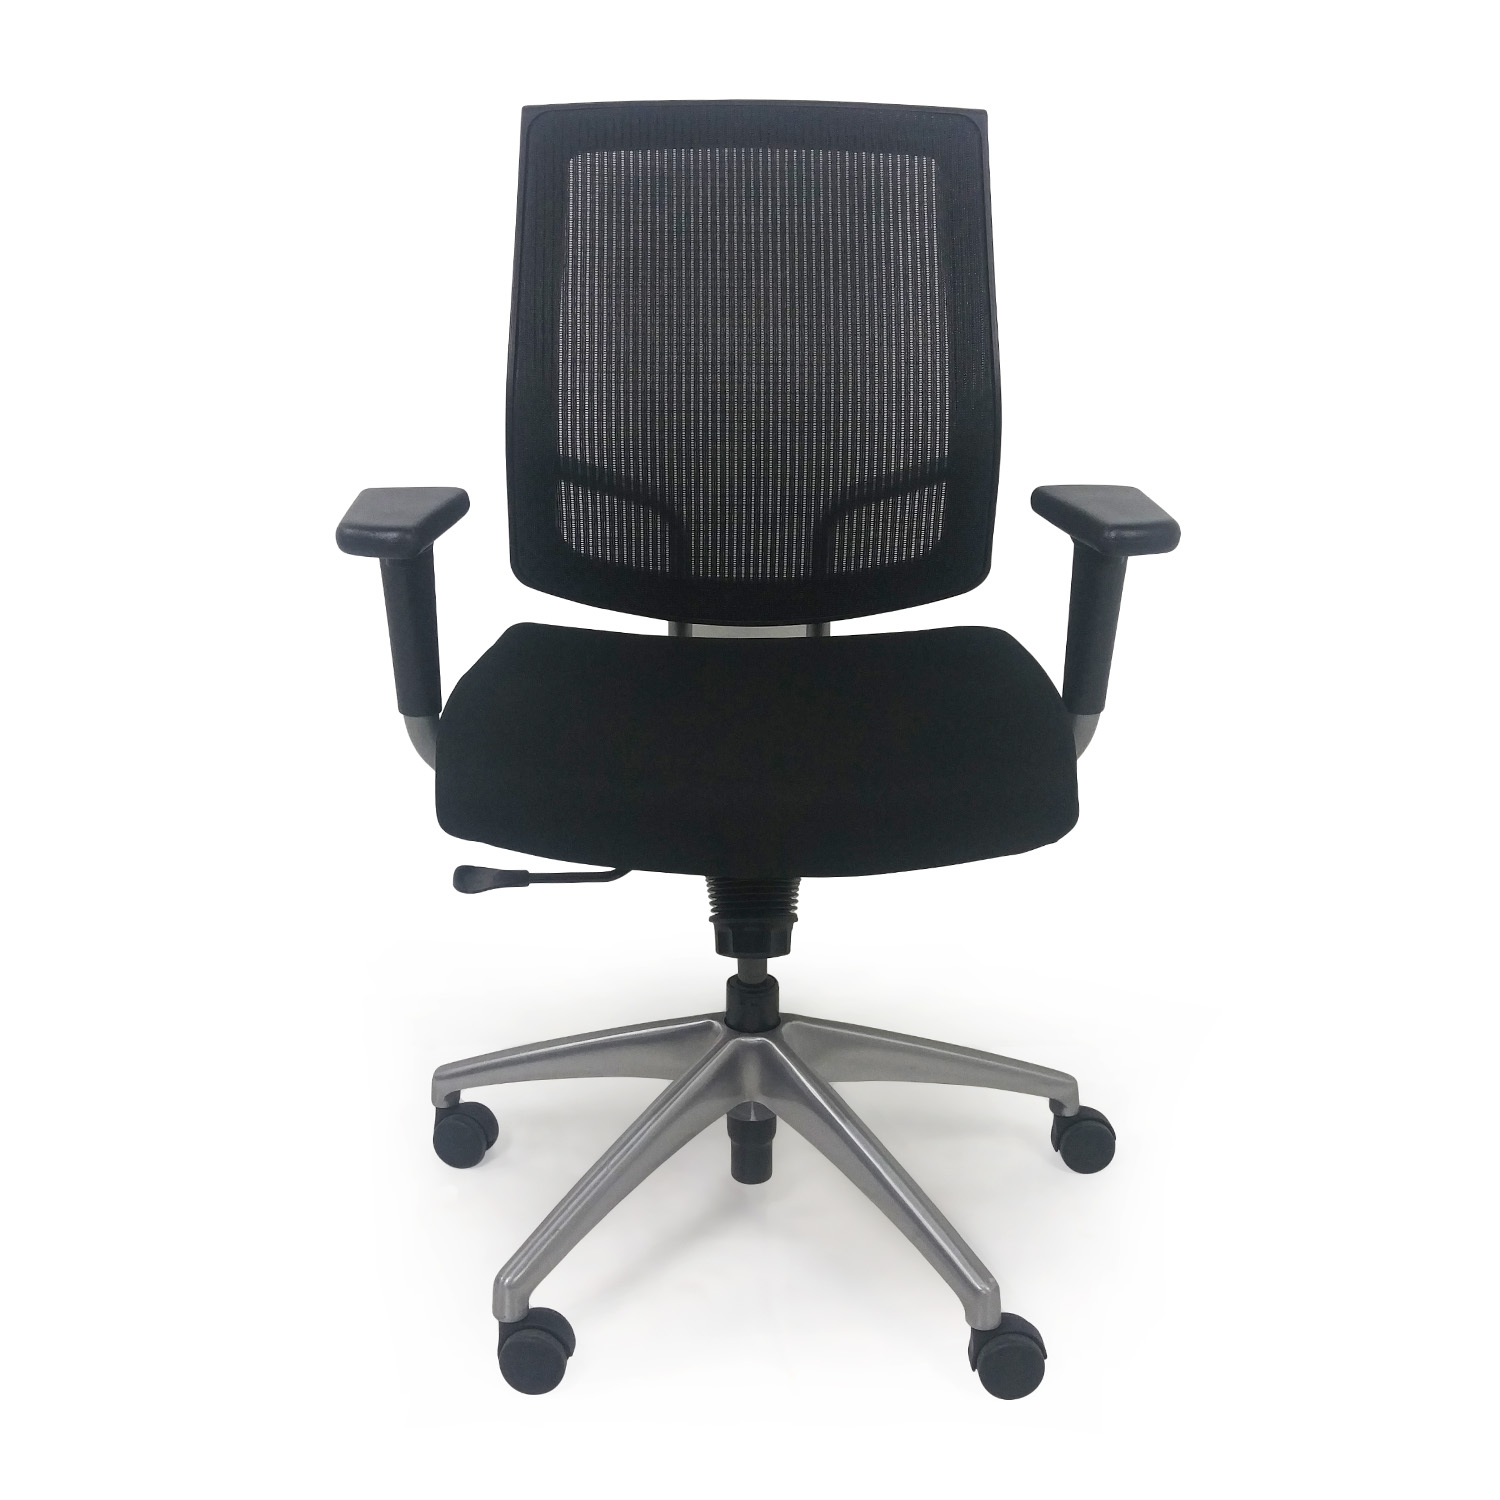 Sitonit Seating Sitonit Seating Mesh Swivel Chair used